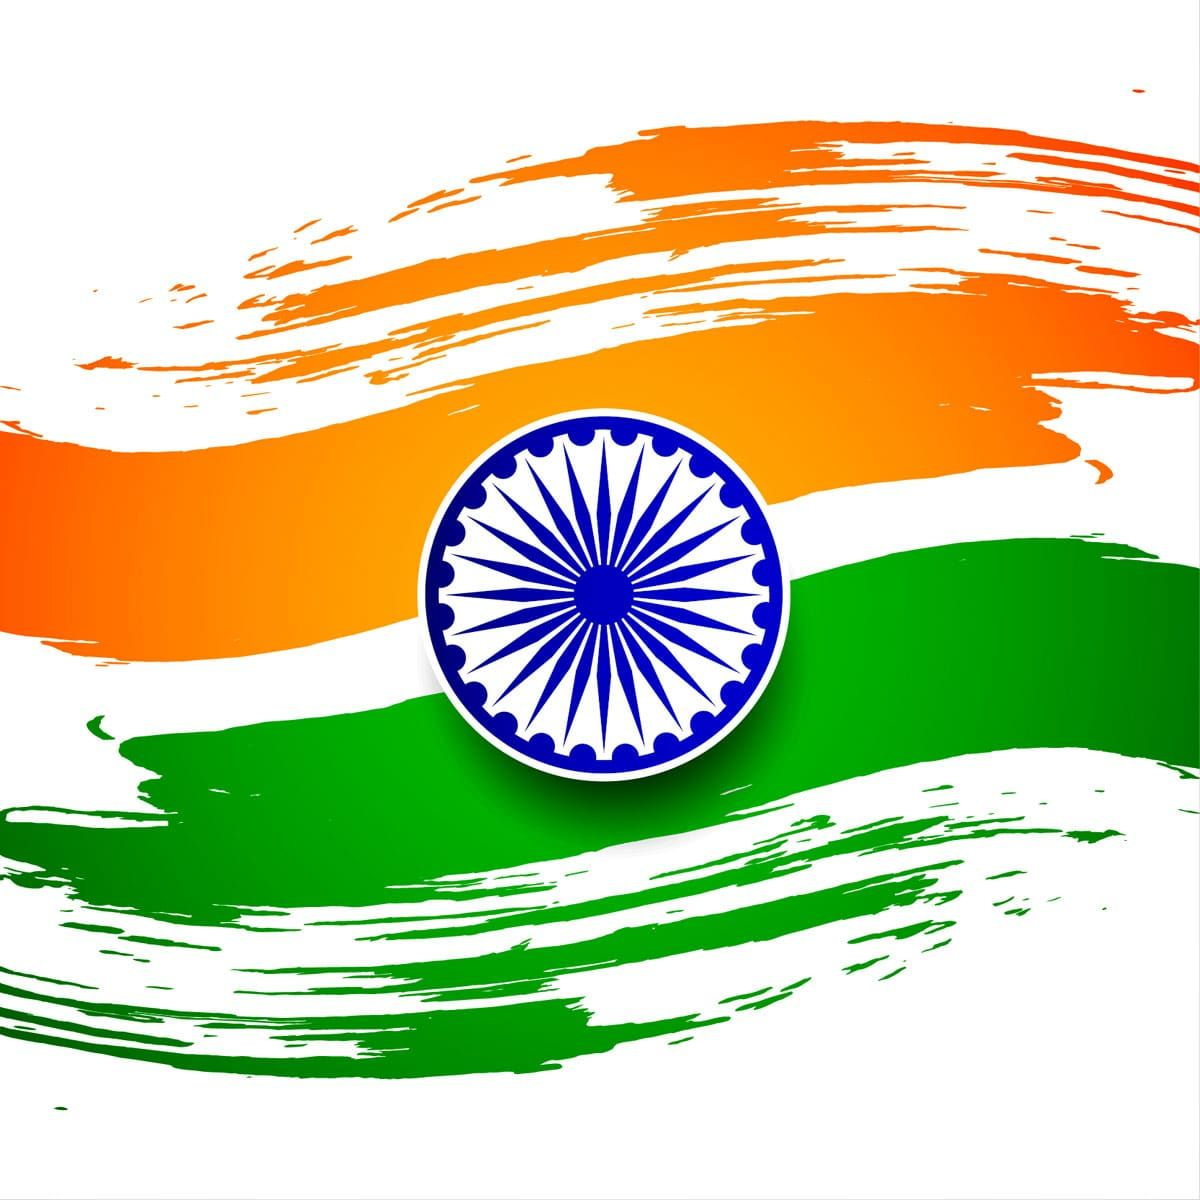 indian flag images 1080p | indian flag | pinterest | indian flag